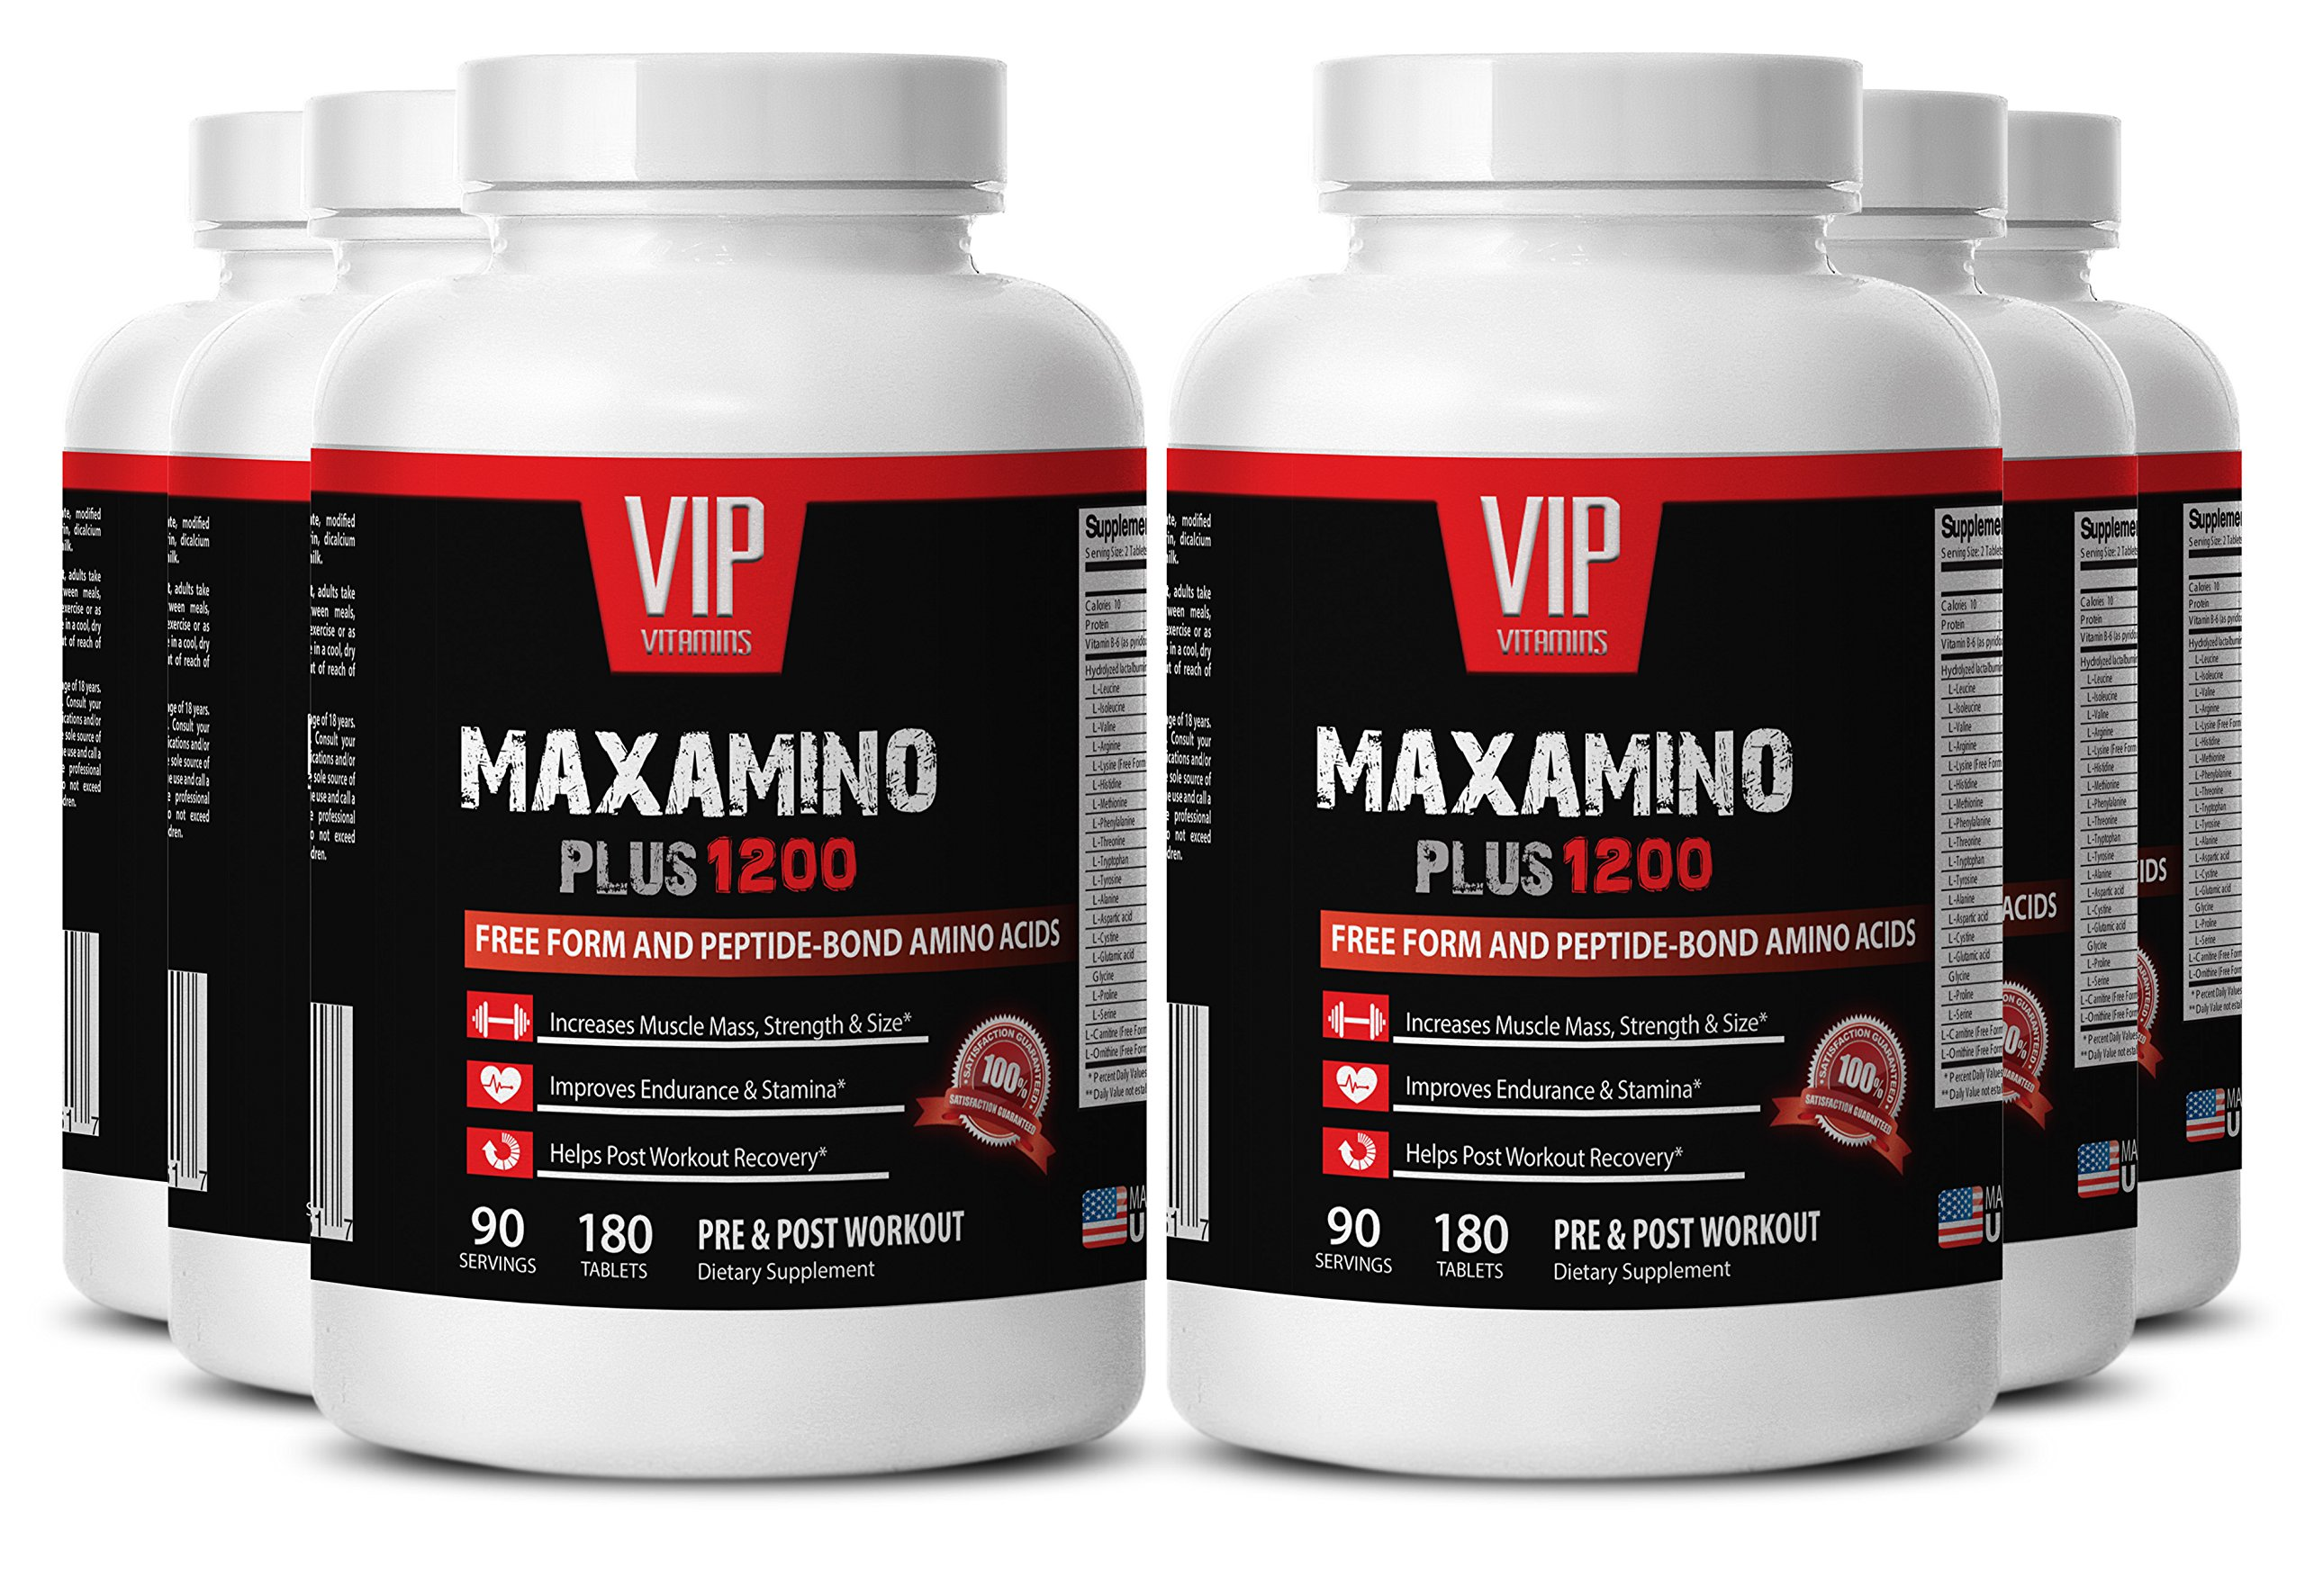 Pre workout for men weight loss - MAXAMINO PLUS 1200 - Bodybuilding supplements for men muscle grow - 6 Bottles 1080 Tablets